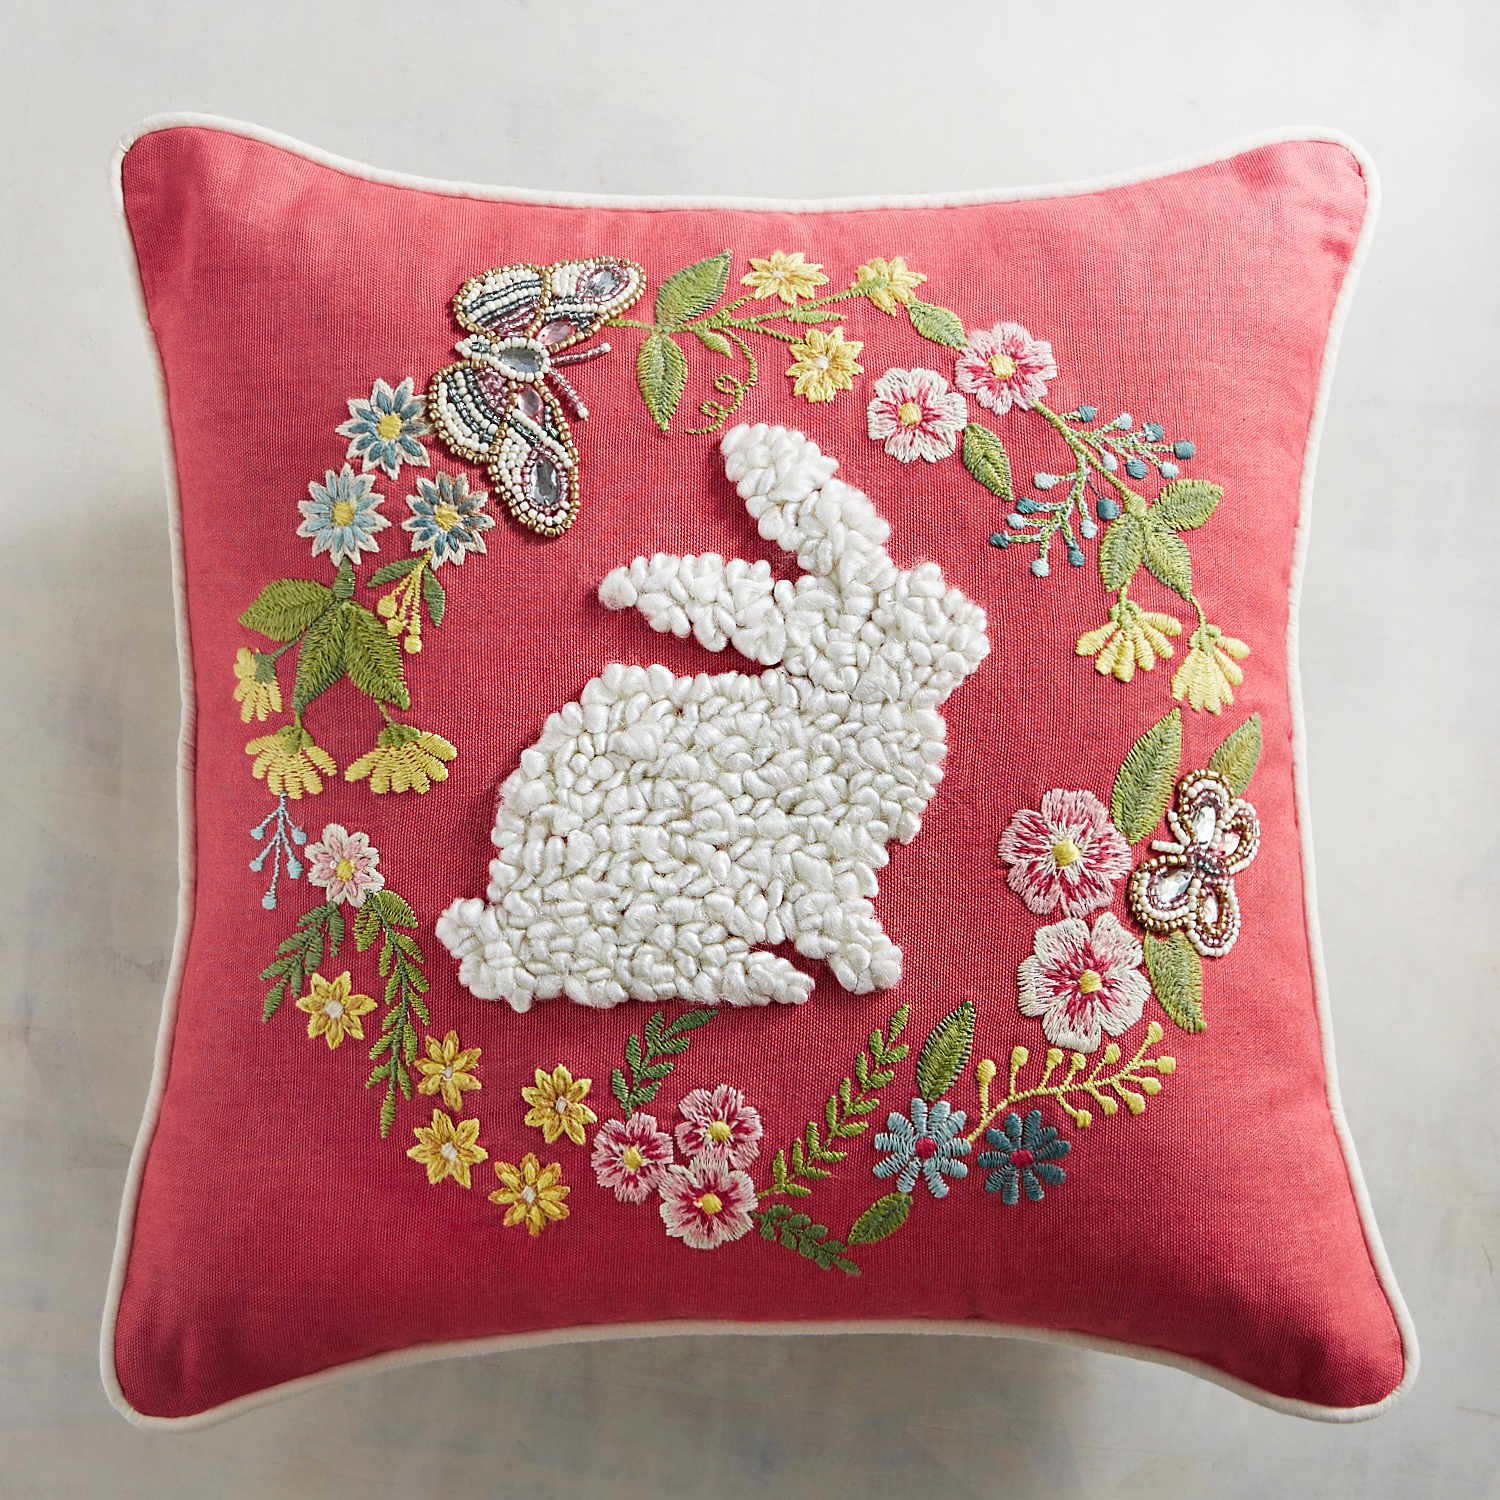 Embroidered Bunny Silhouette in Wreath Pillow